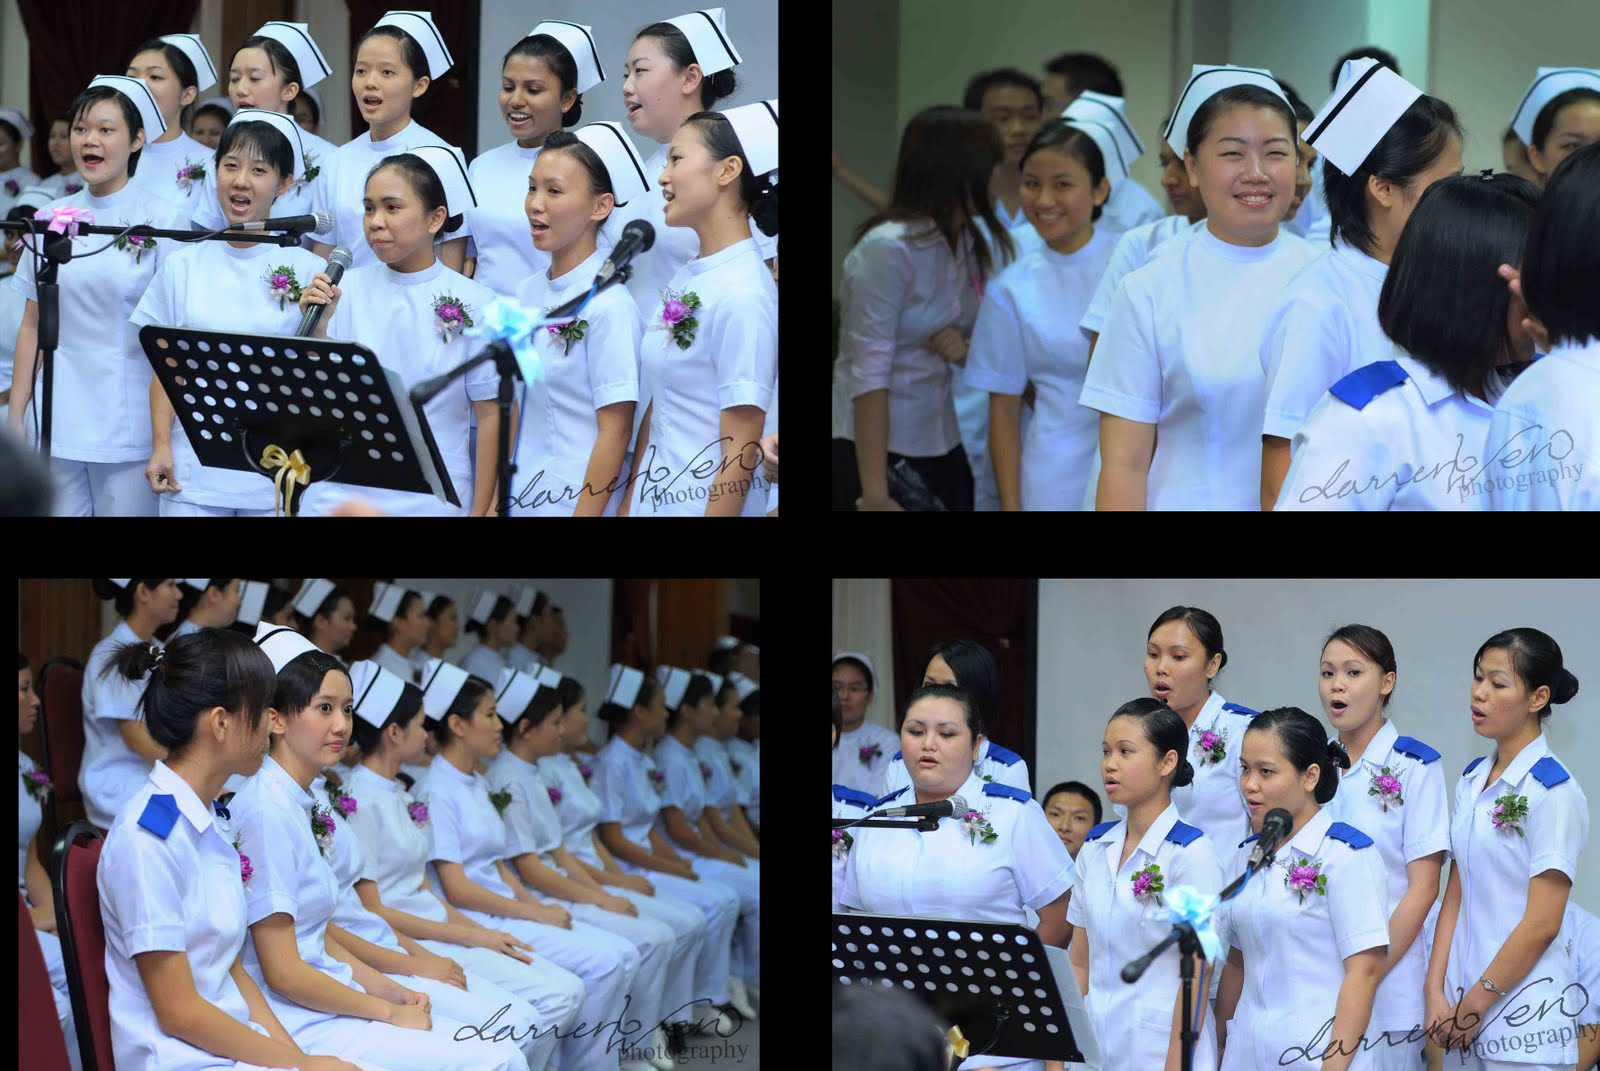 Darren Wen Photography: Adventist College of Nursing ...